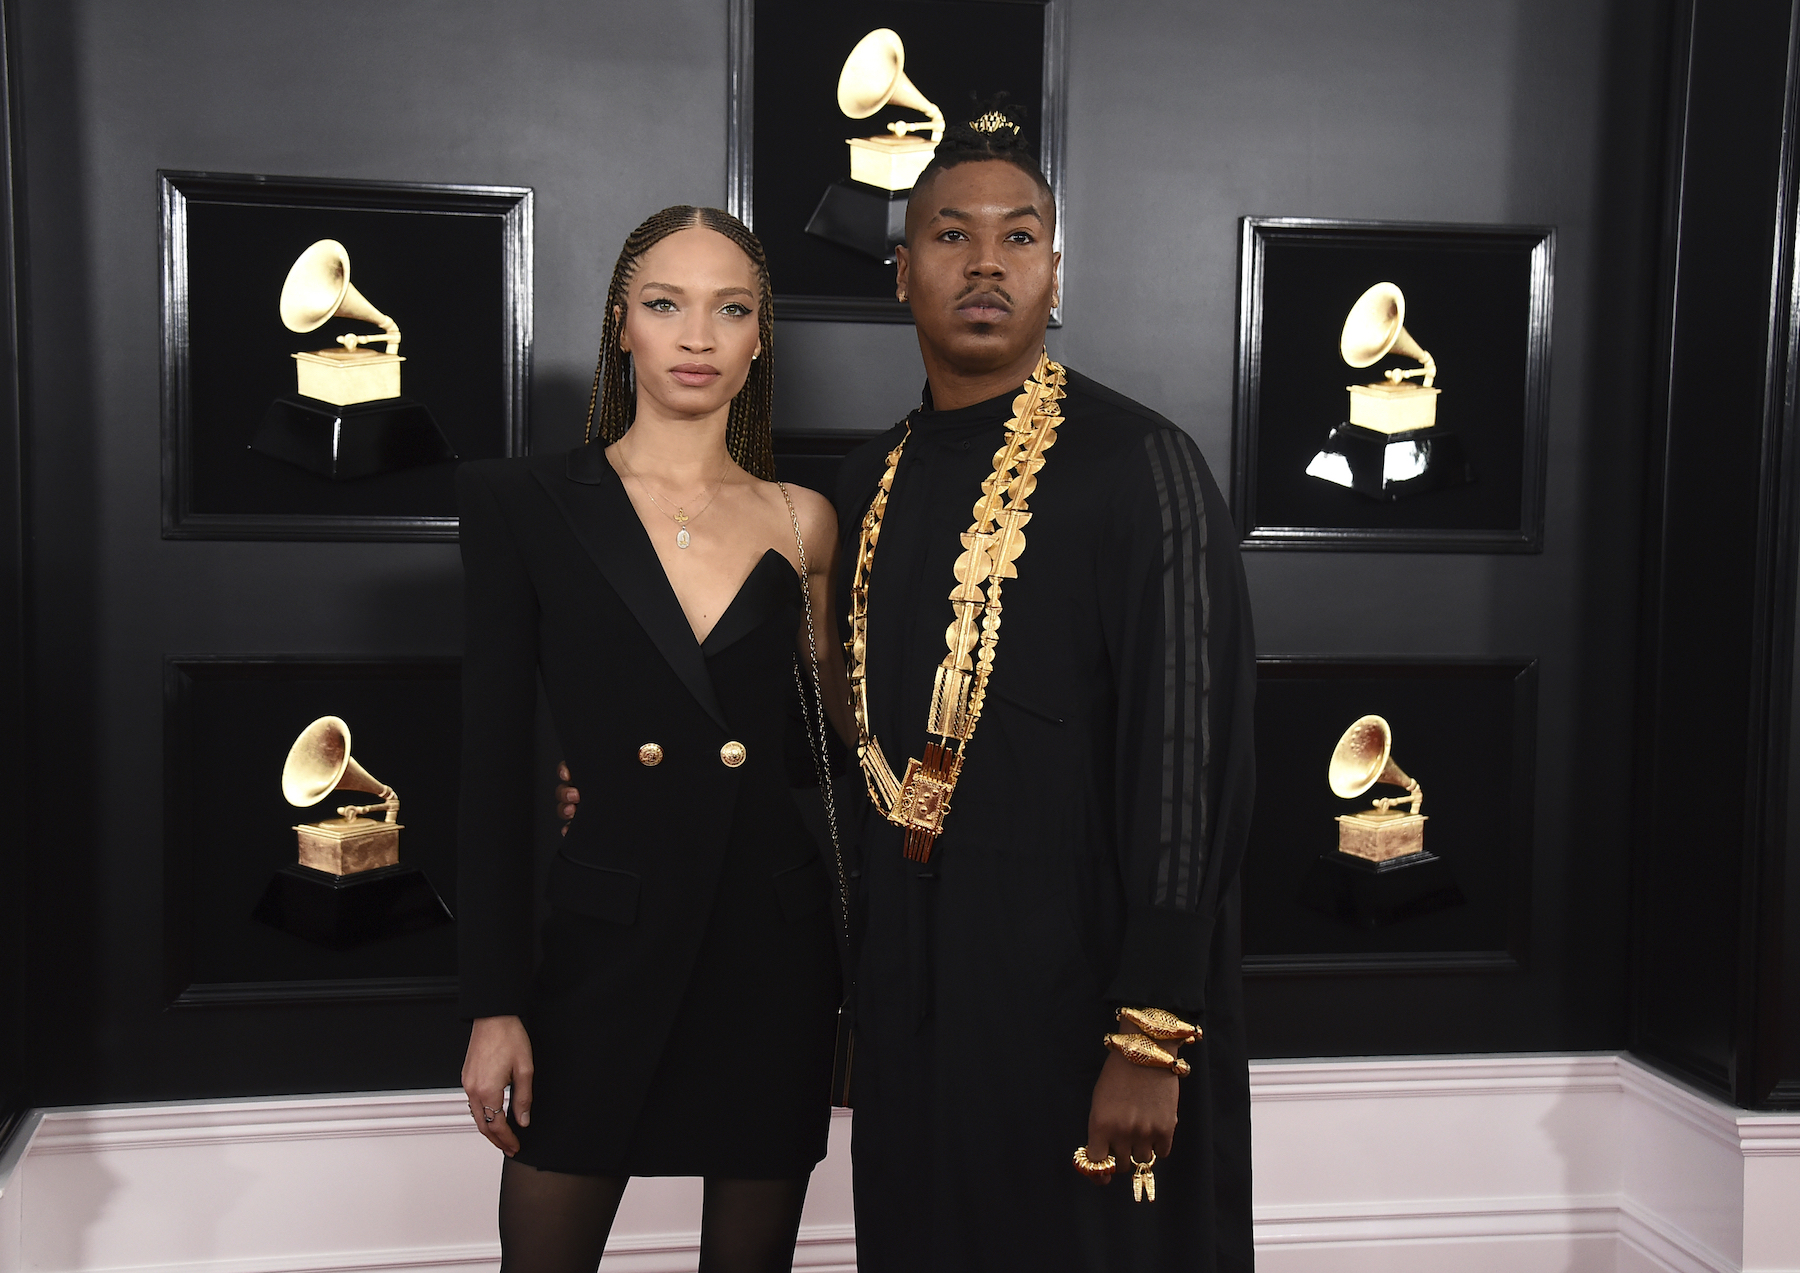 "<div class=""meta image-caption""><div class=""origin-logo origin-image ap""><span>AP</span></div><span class=""caption-text"">Devan Mayfield, left, and Christian Scott aTunde Adjuah arrive at the 61st annual Grammy Awards at the Staples Center on Sunday, Feb. 10, 2019, in Los Angeles. (Jordan Strauss/Invision/AP)</span></div>"